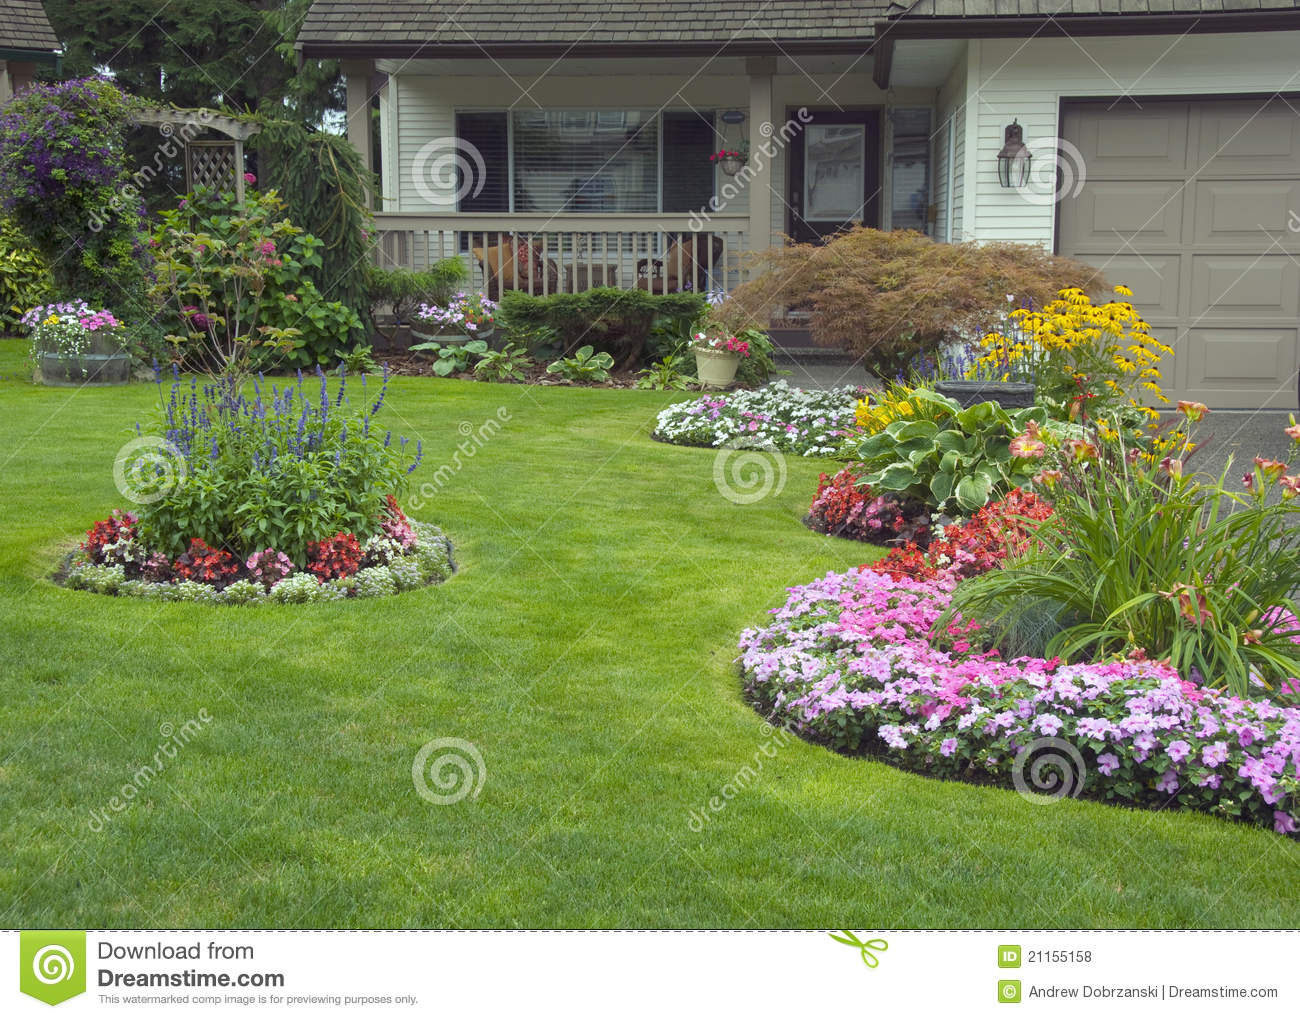 Manicured Home and Garden